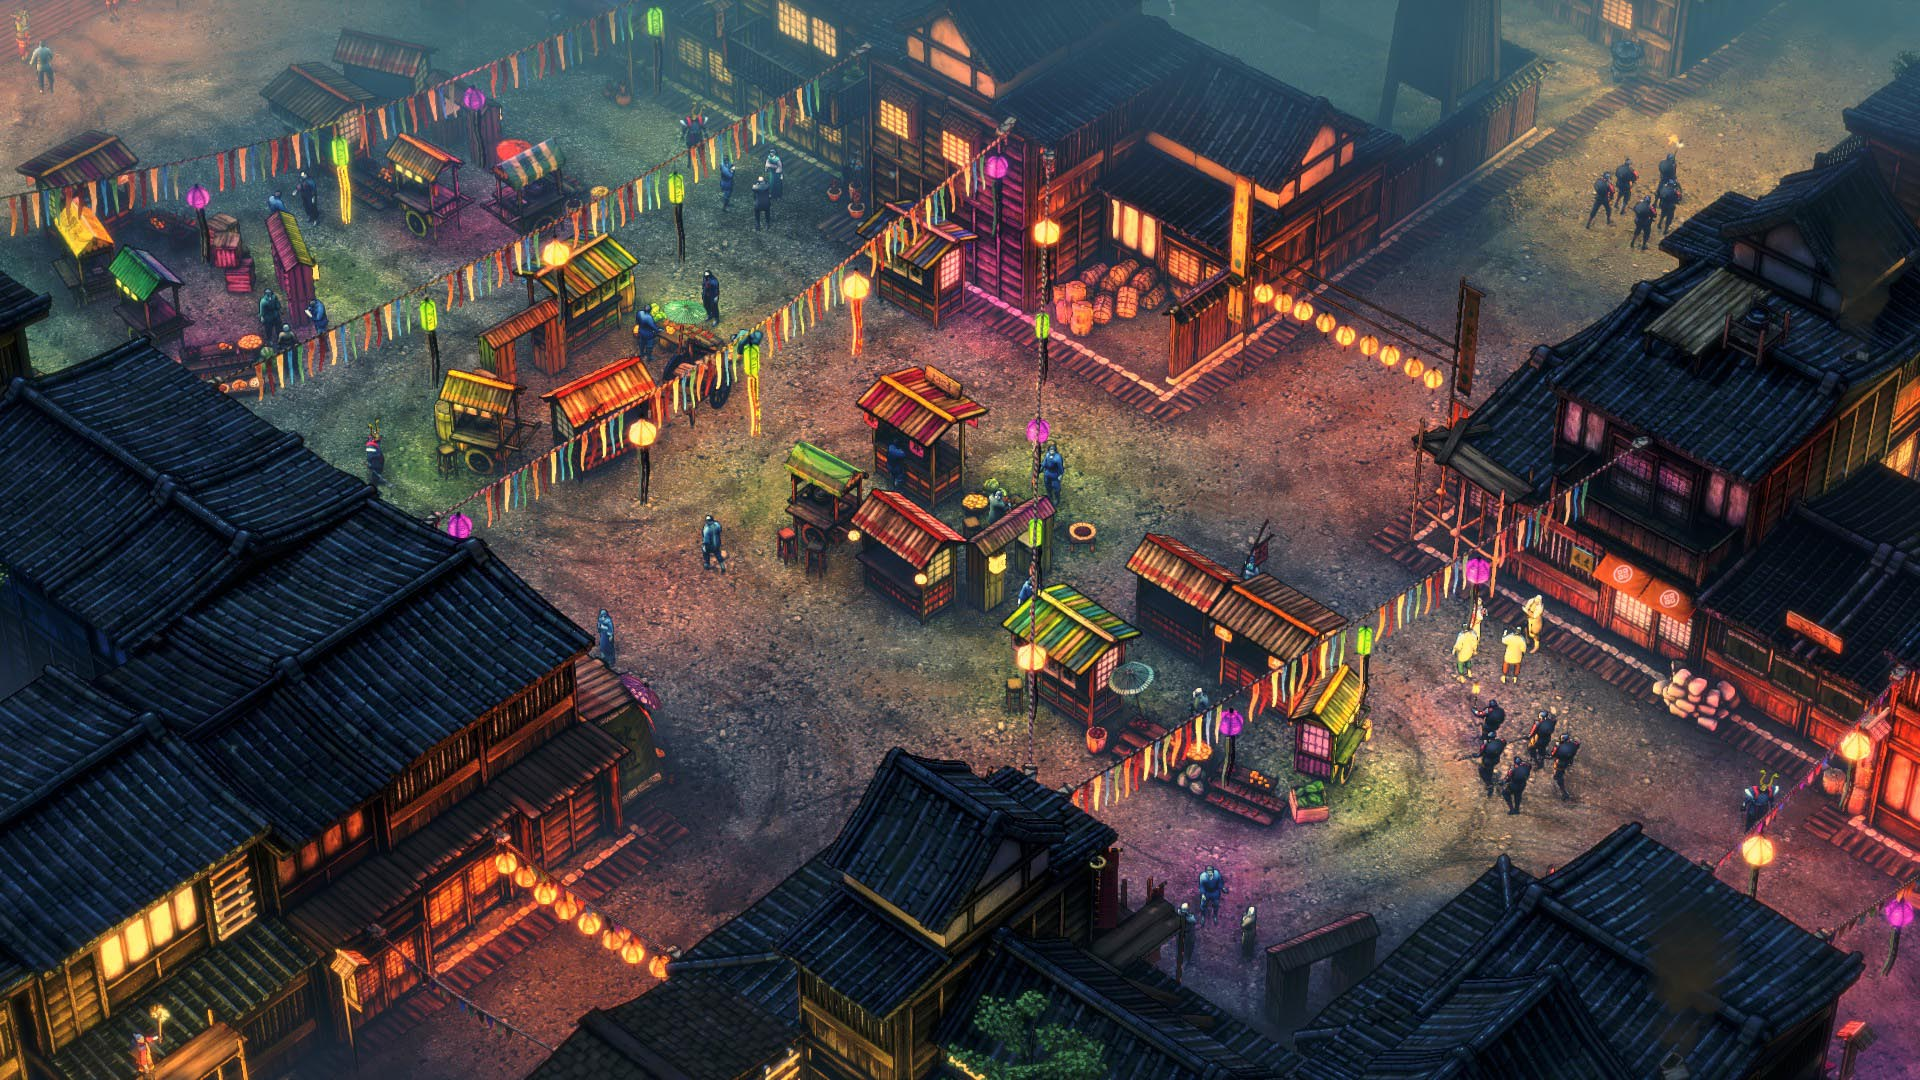 Shadow Tactics Night Market